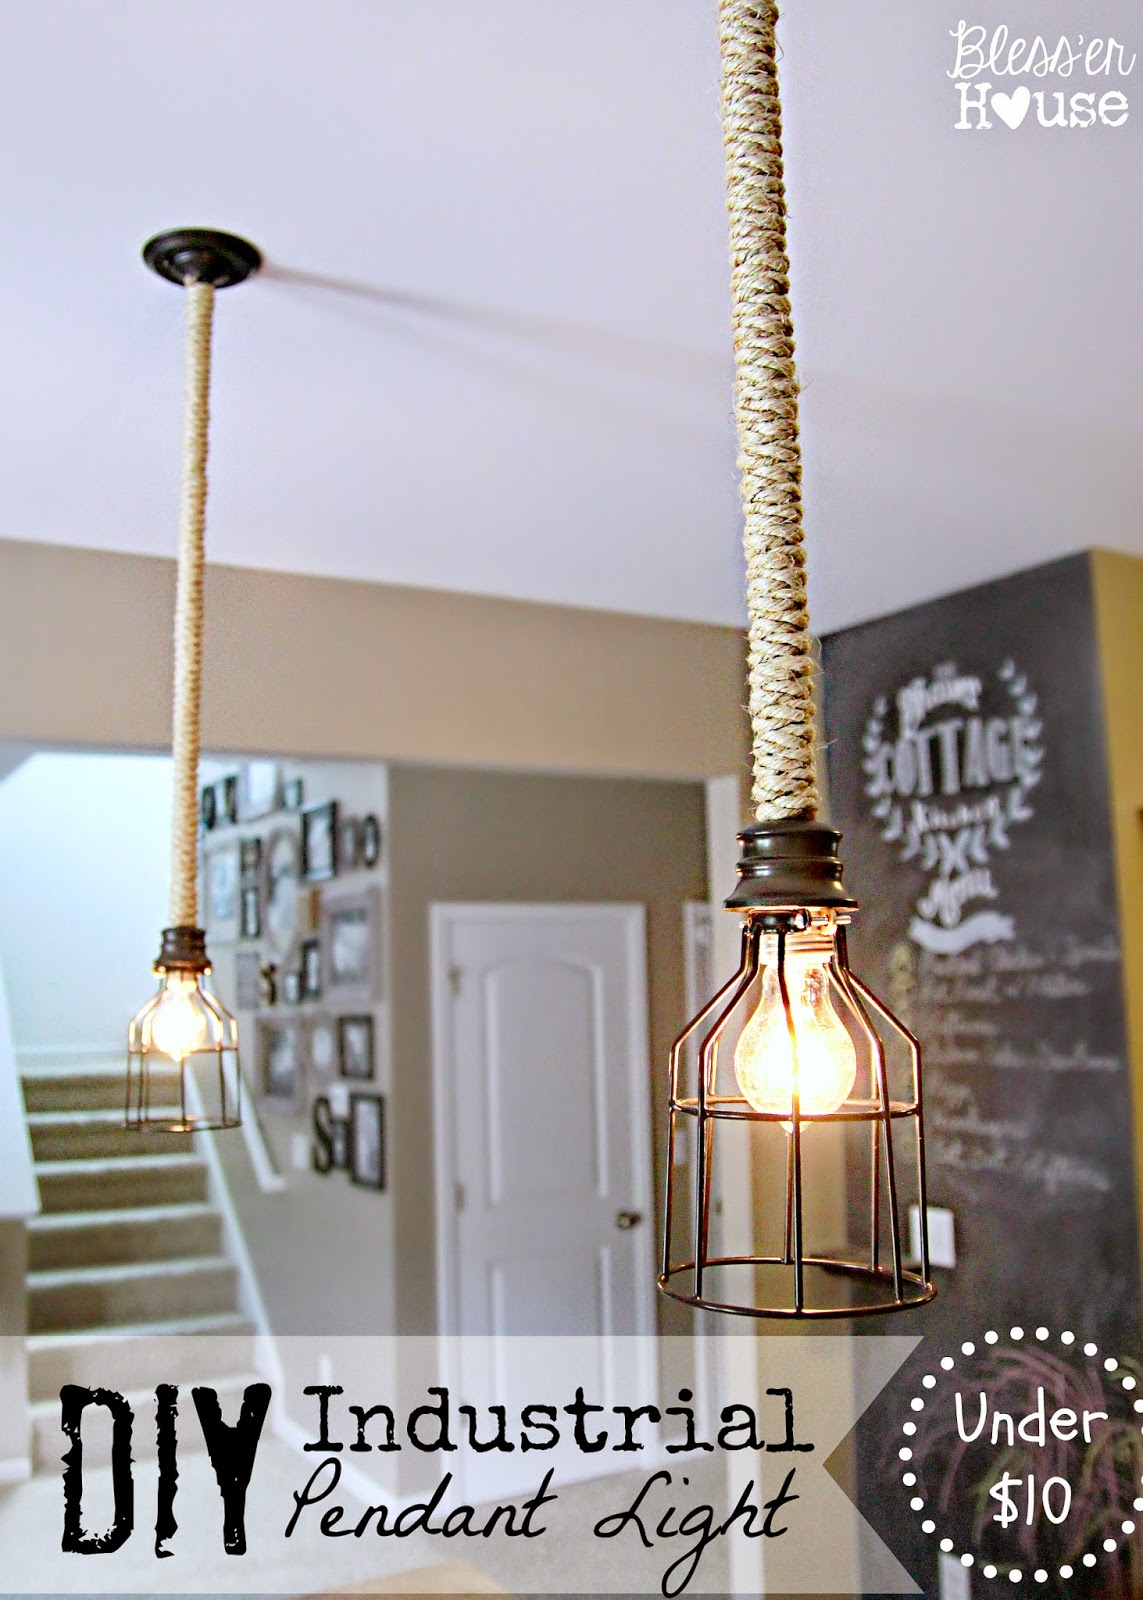 Pendant Lighting Diy Industrial Pendant Light For Under 10 Bless Er House